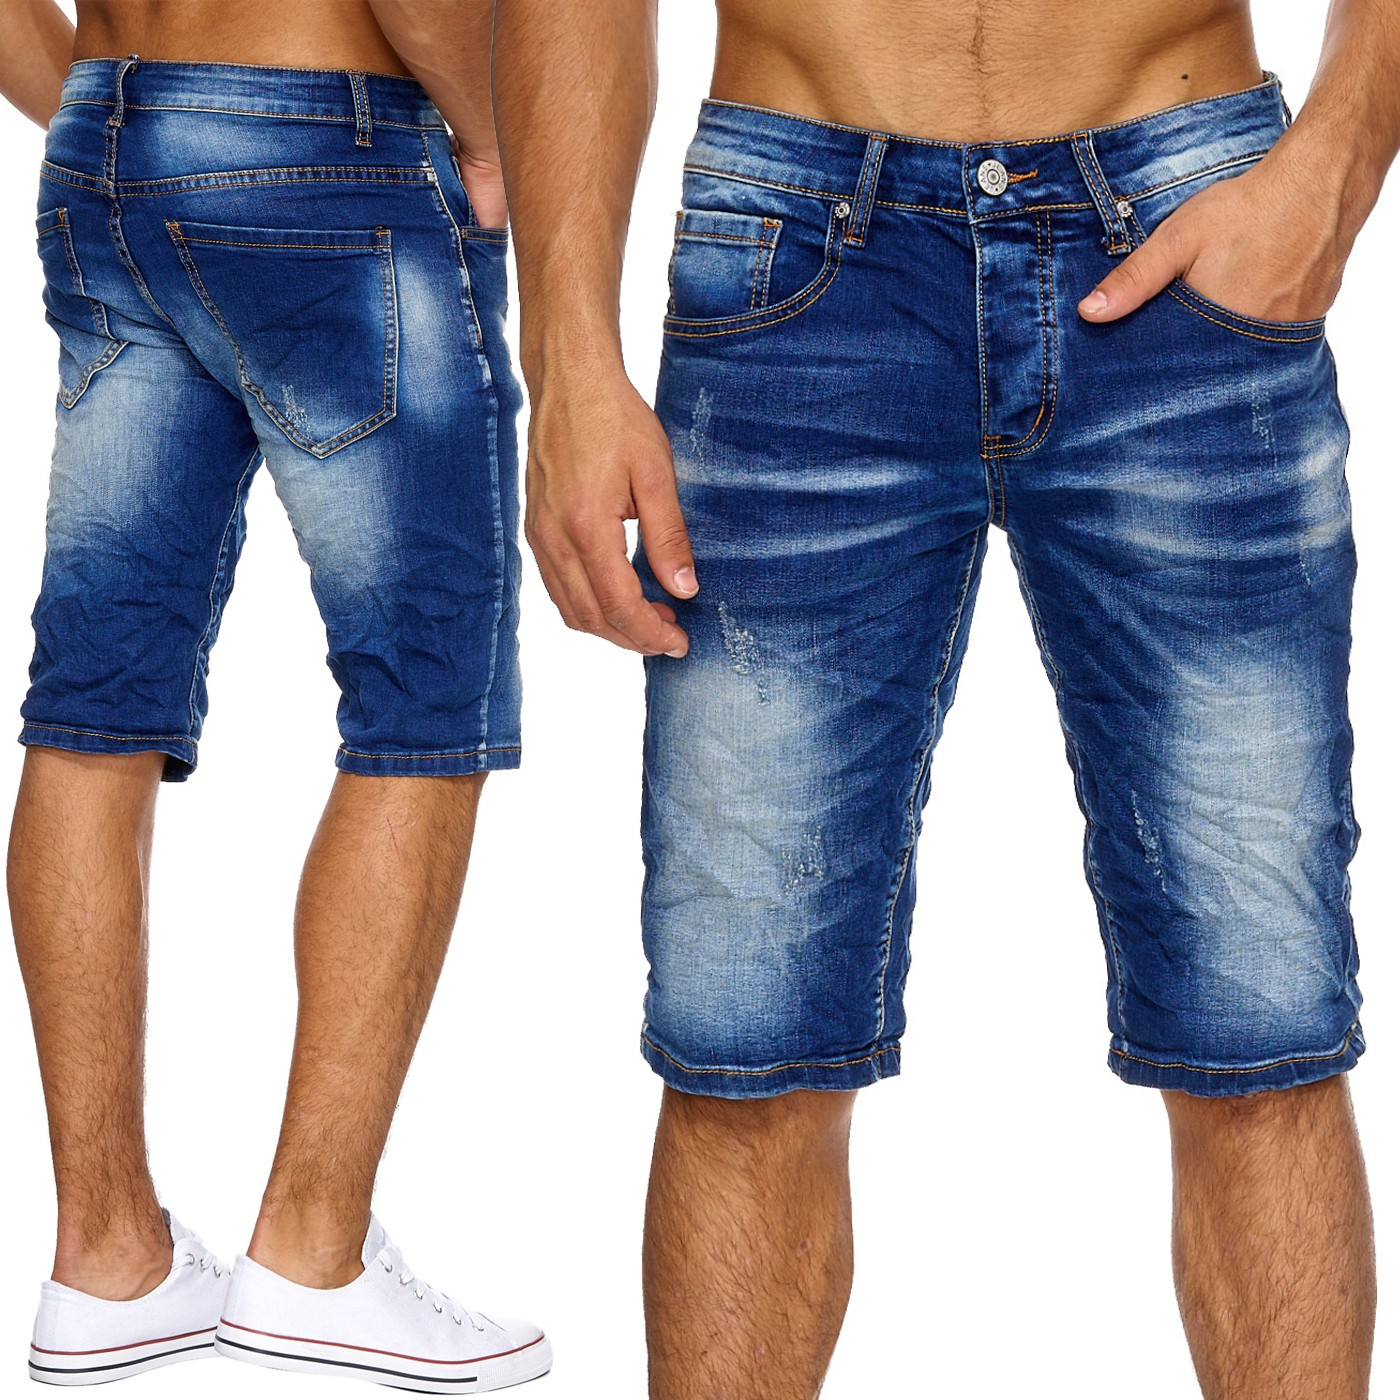 herren jeans shorts stonewashed hose ripped frayed denim zerrissen herrenshorts ebay. Black Bedroom Furniture Sets. Home Design Ideas